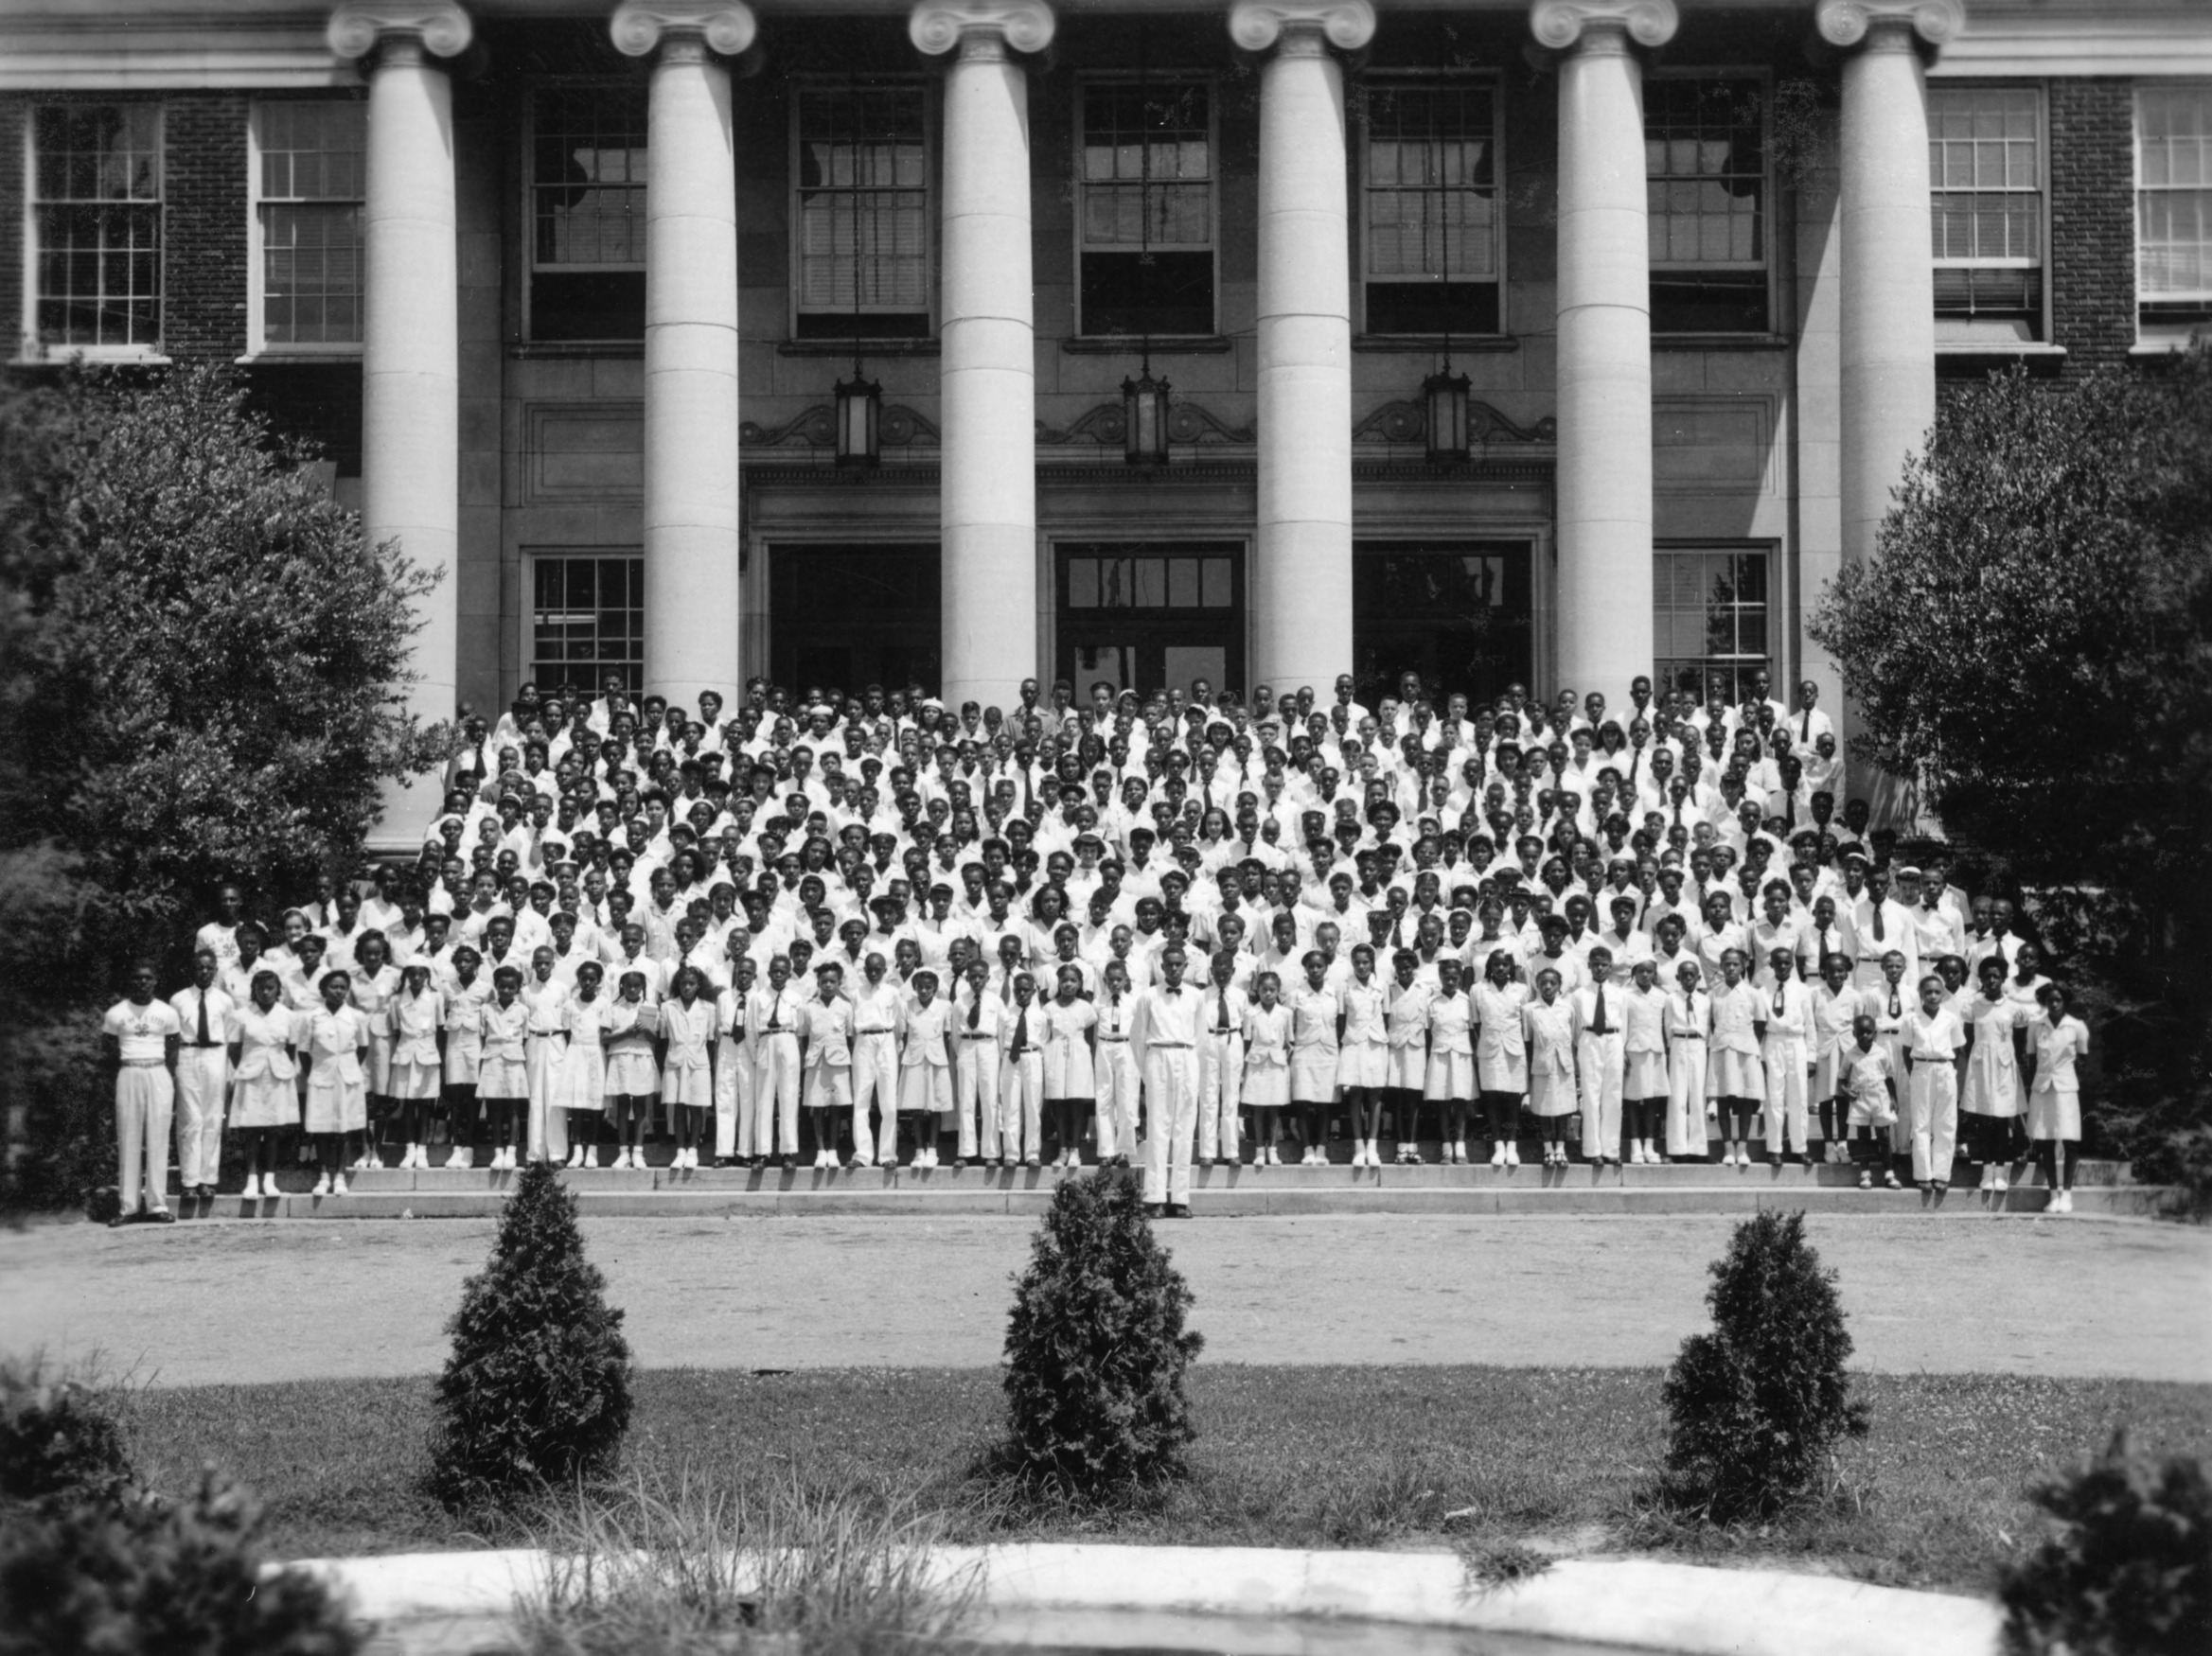 4-H club members assembled at the North Carolina State 4-H Negro Short Course in 1947